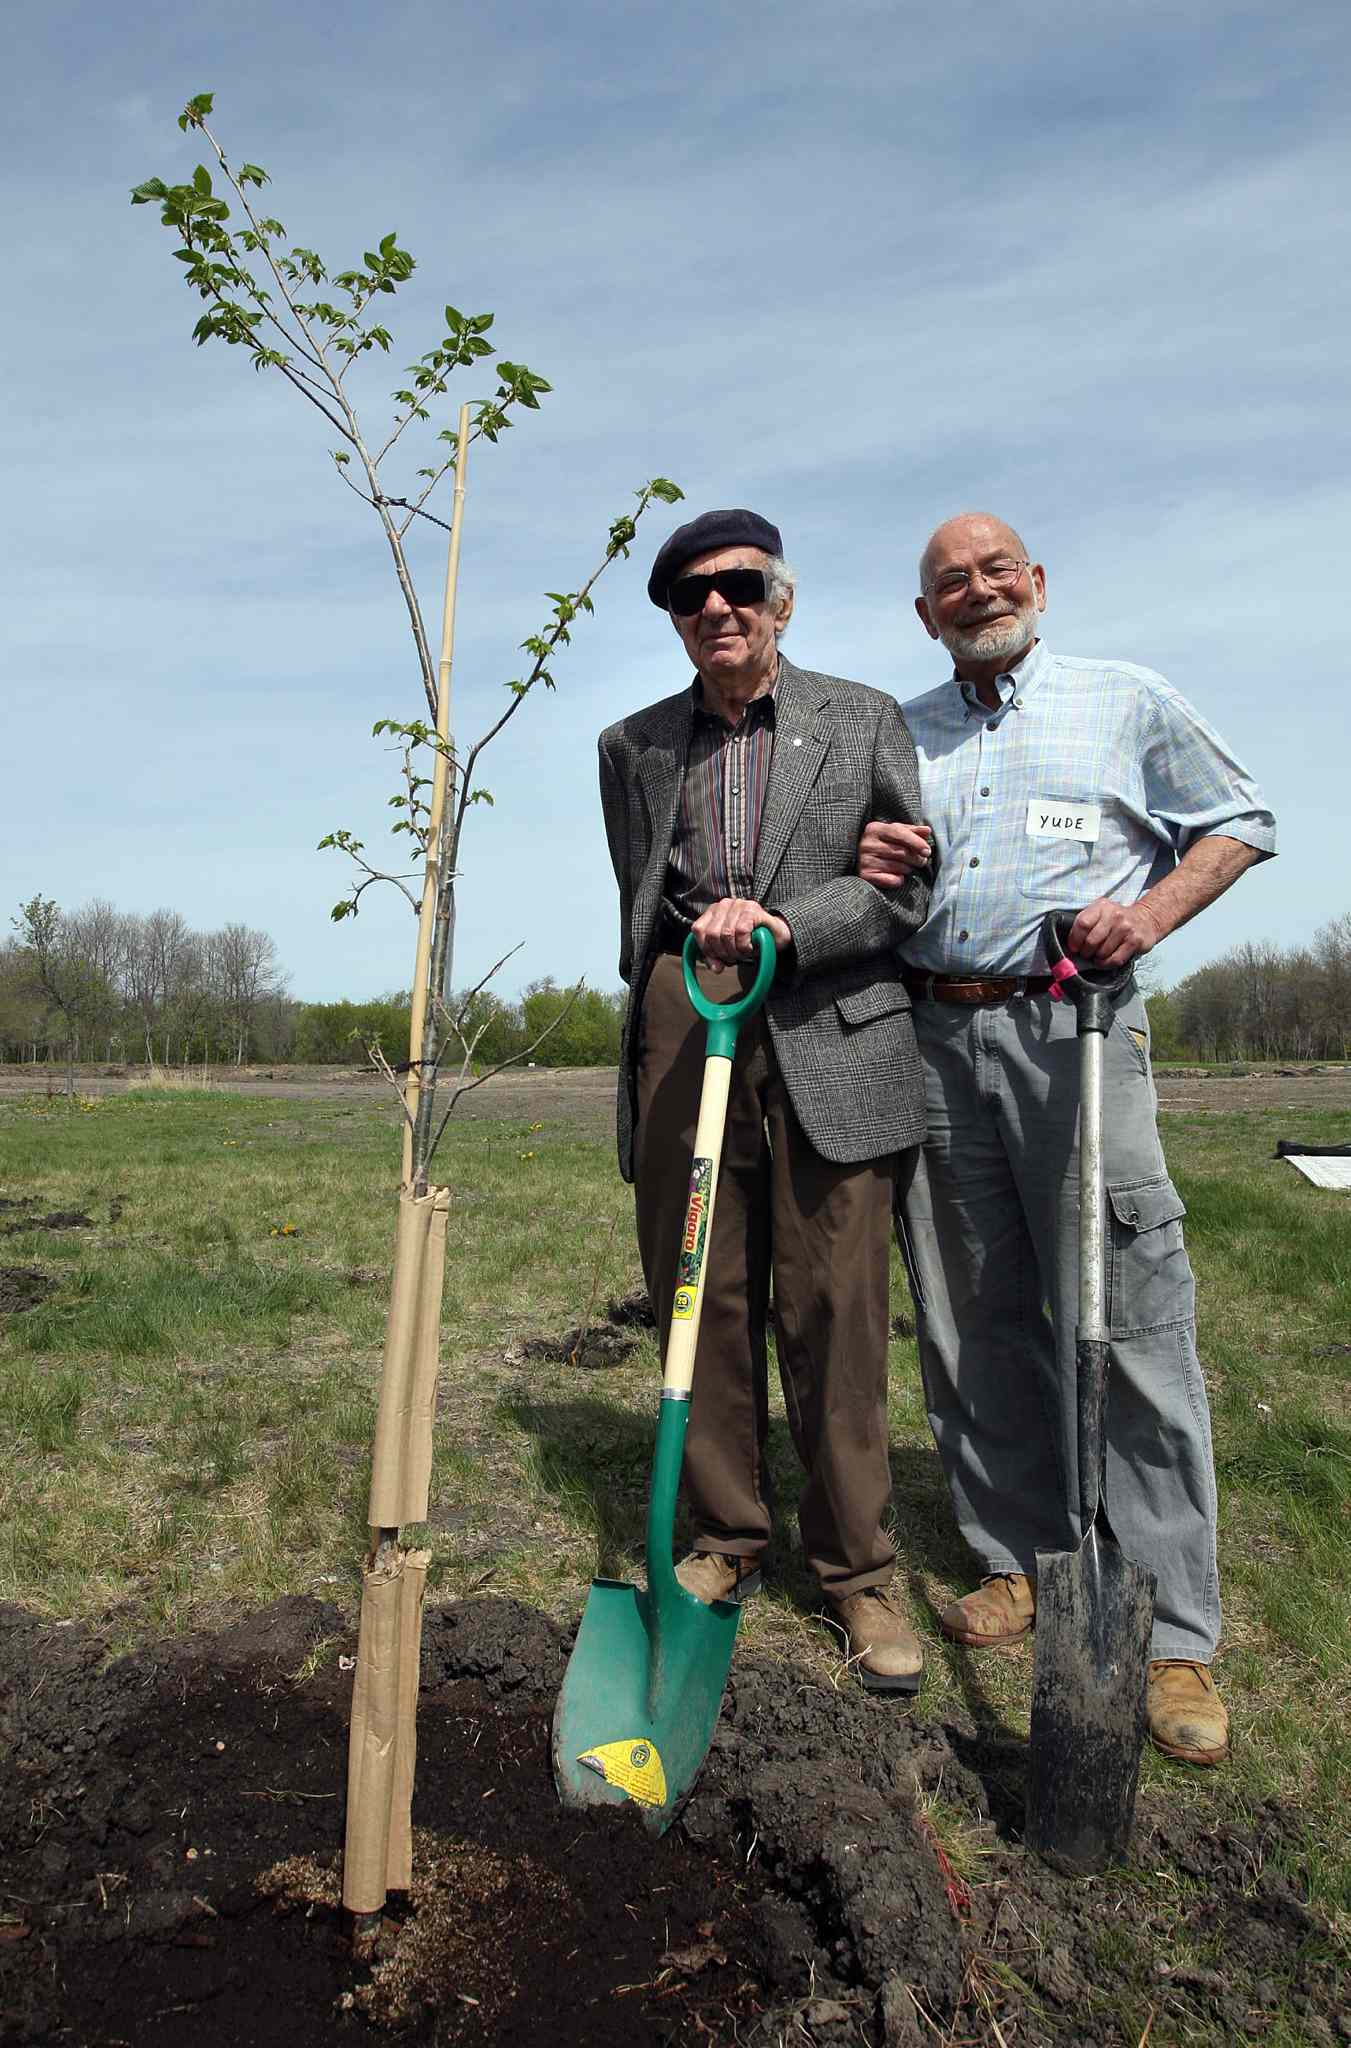 Val Werier, left, and Yude Henteleff plant a tree in Henteleff Park on May 24, 2008. The Henteleff Park Foundation honoured Werier, a Winnipeg Free Press columnist and environment supporter, at the St. Mary's Road park by planting hundreds of trees.